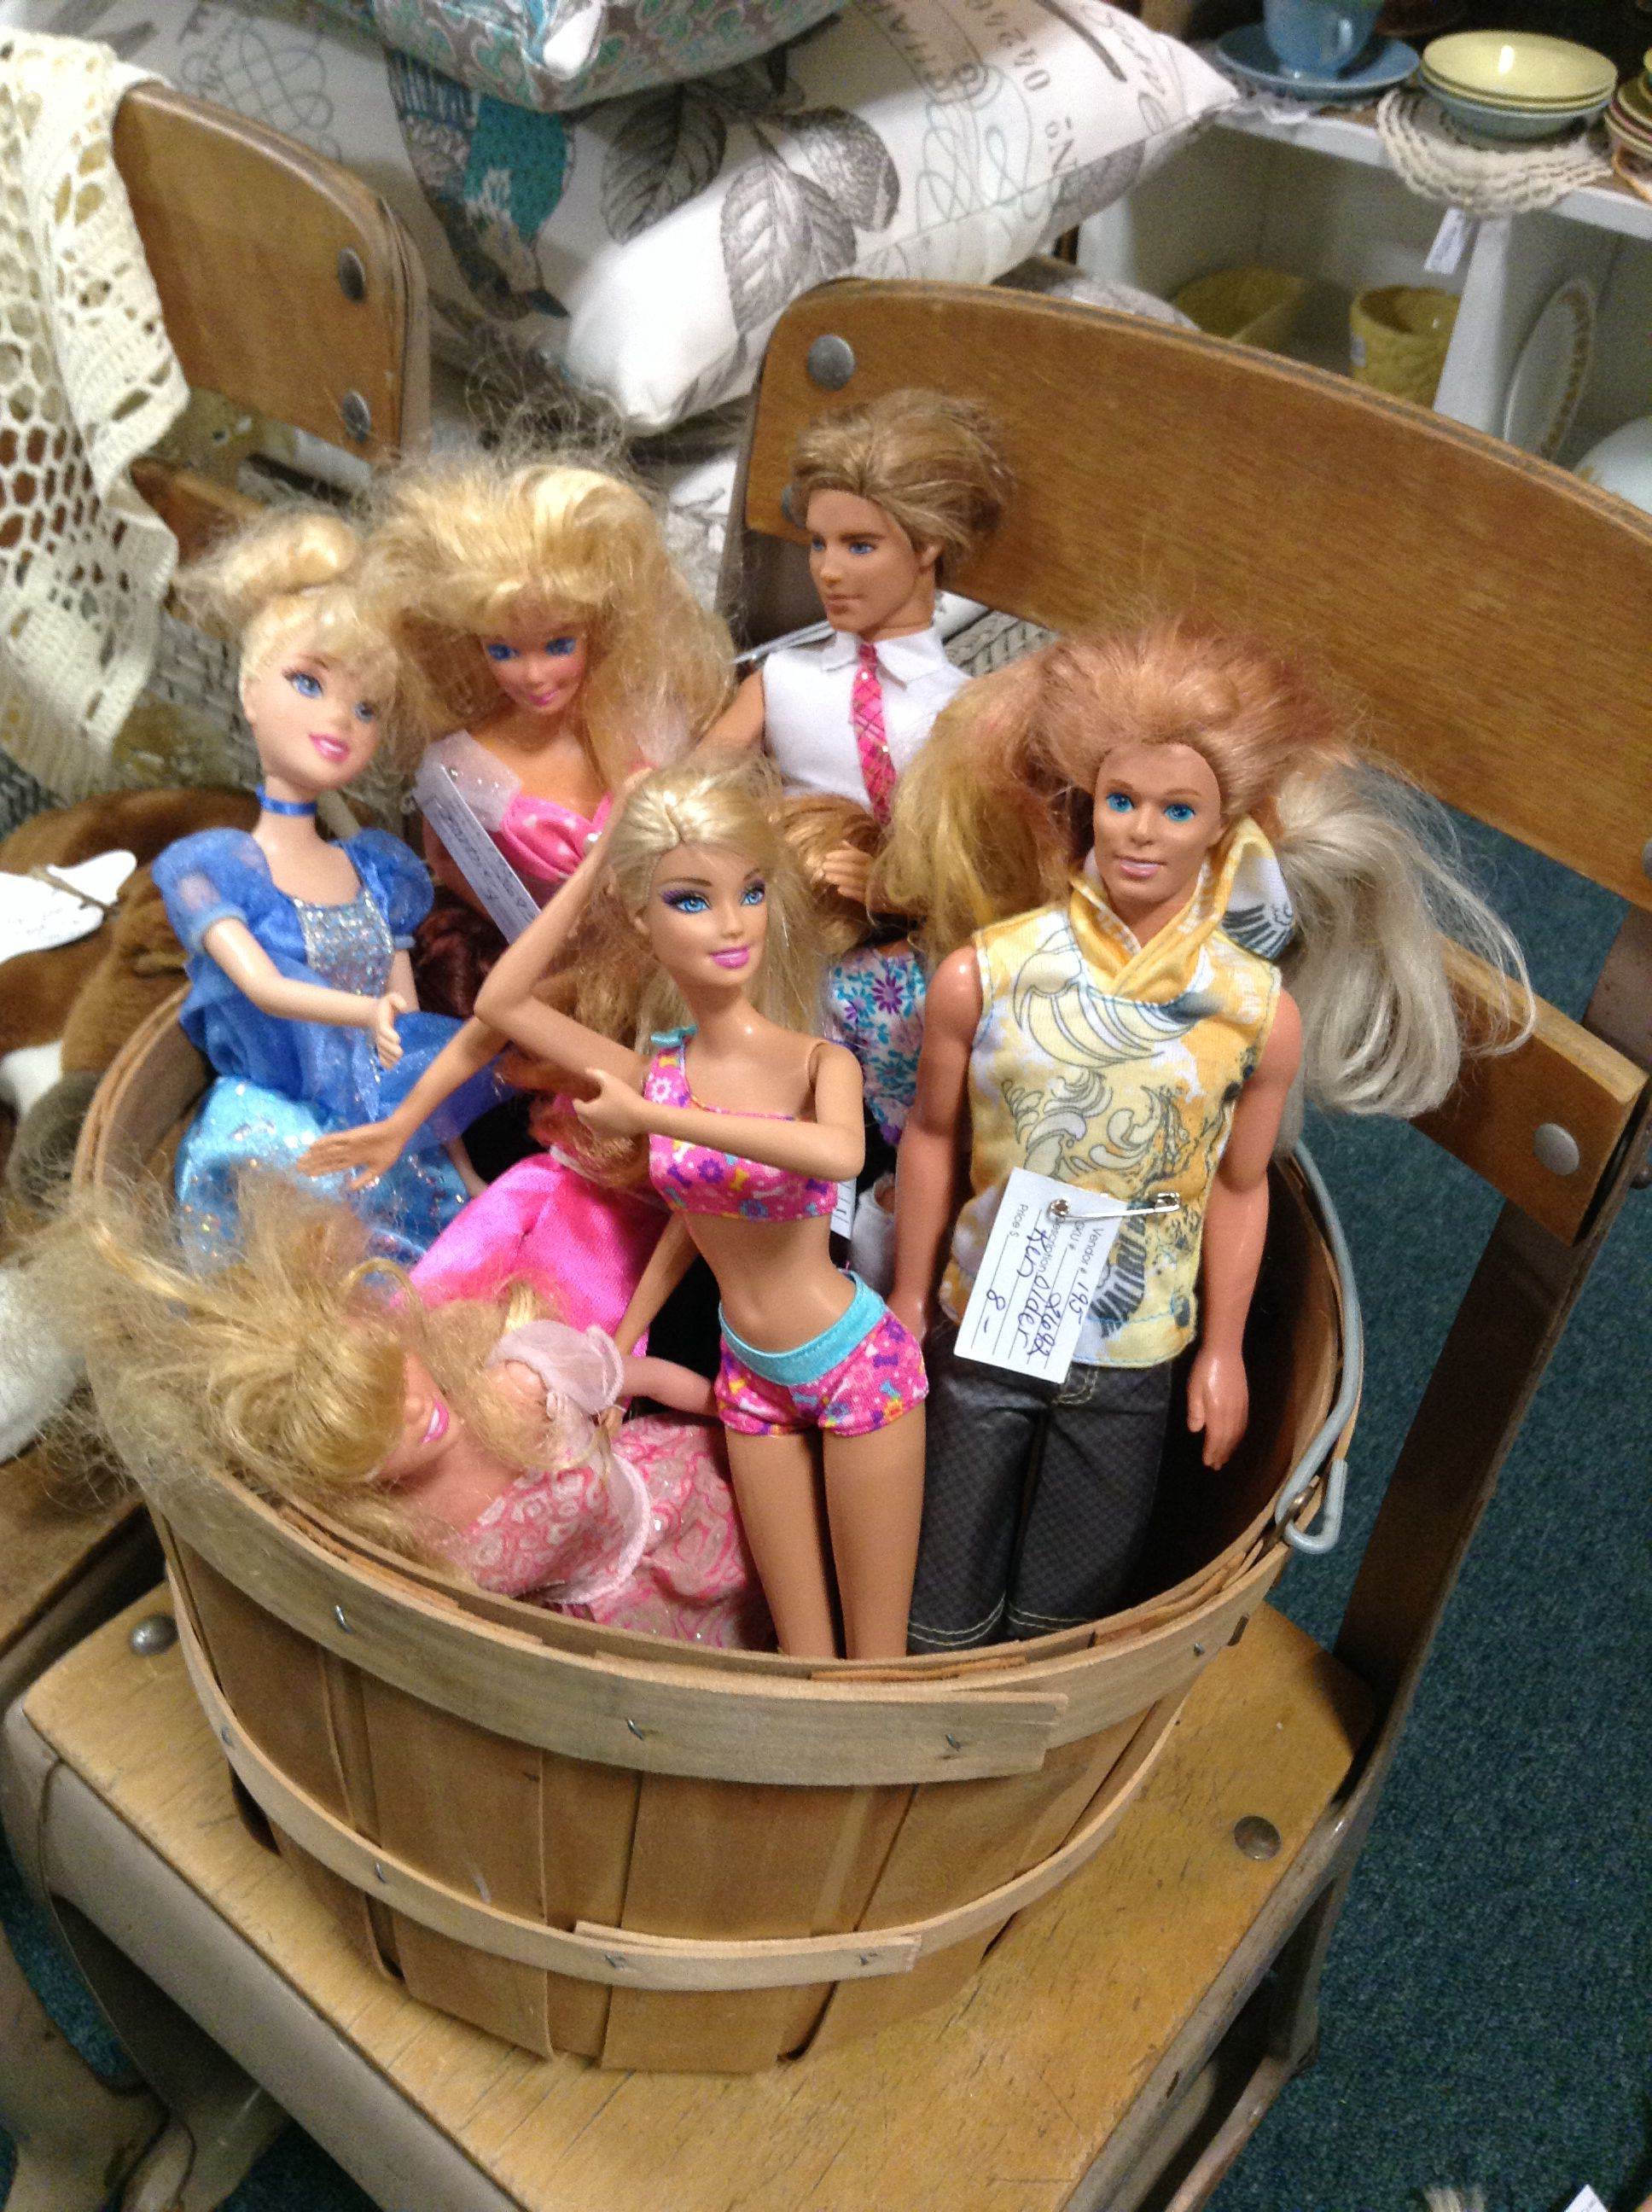 Barbie hot tub party!   Collectibles - Brass Armadillo   Pinterest ...